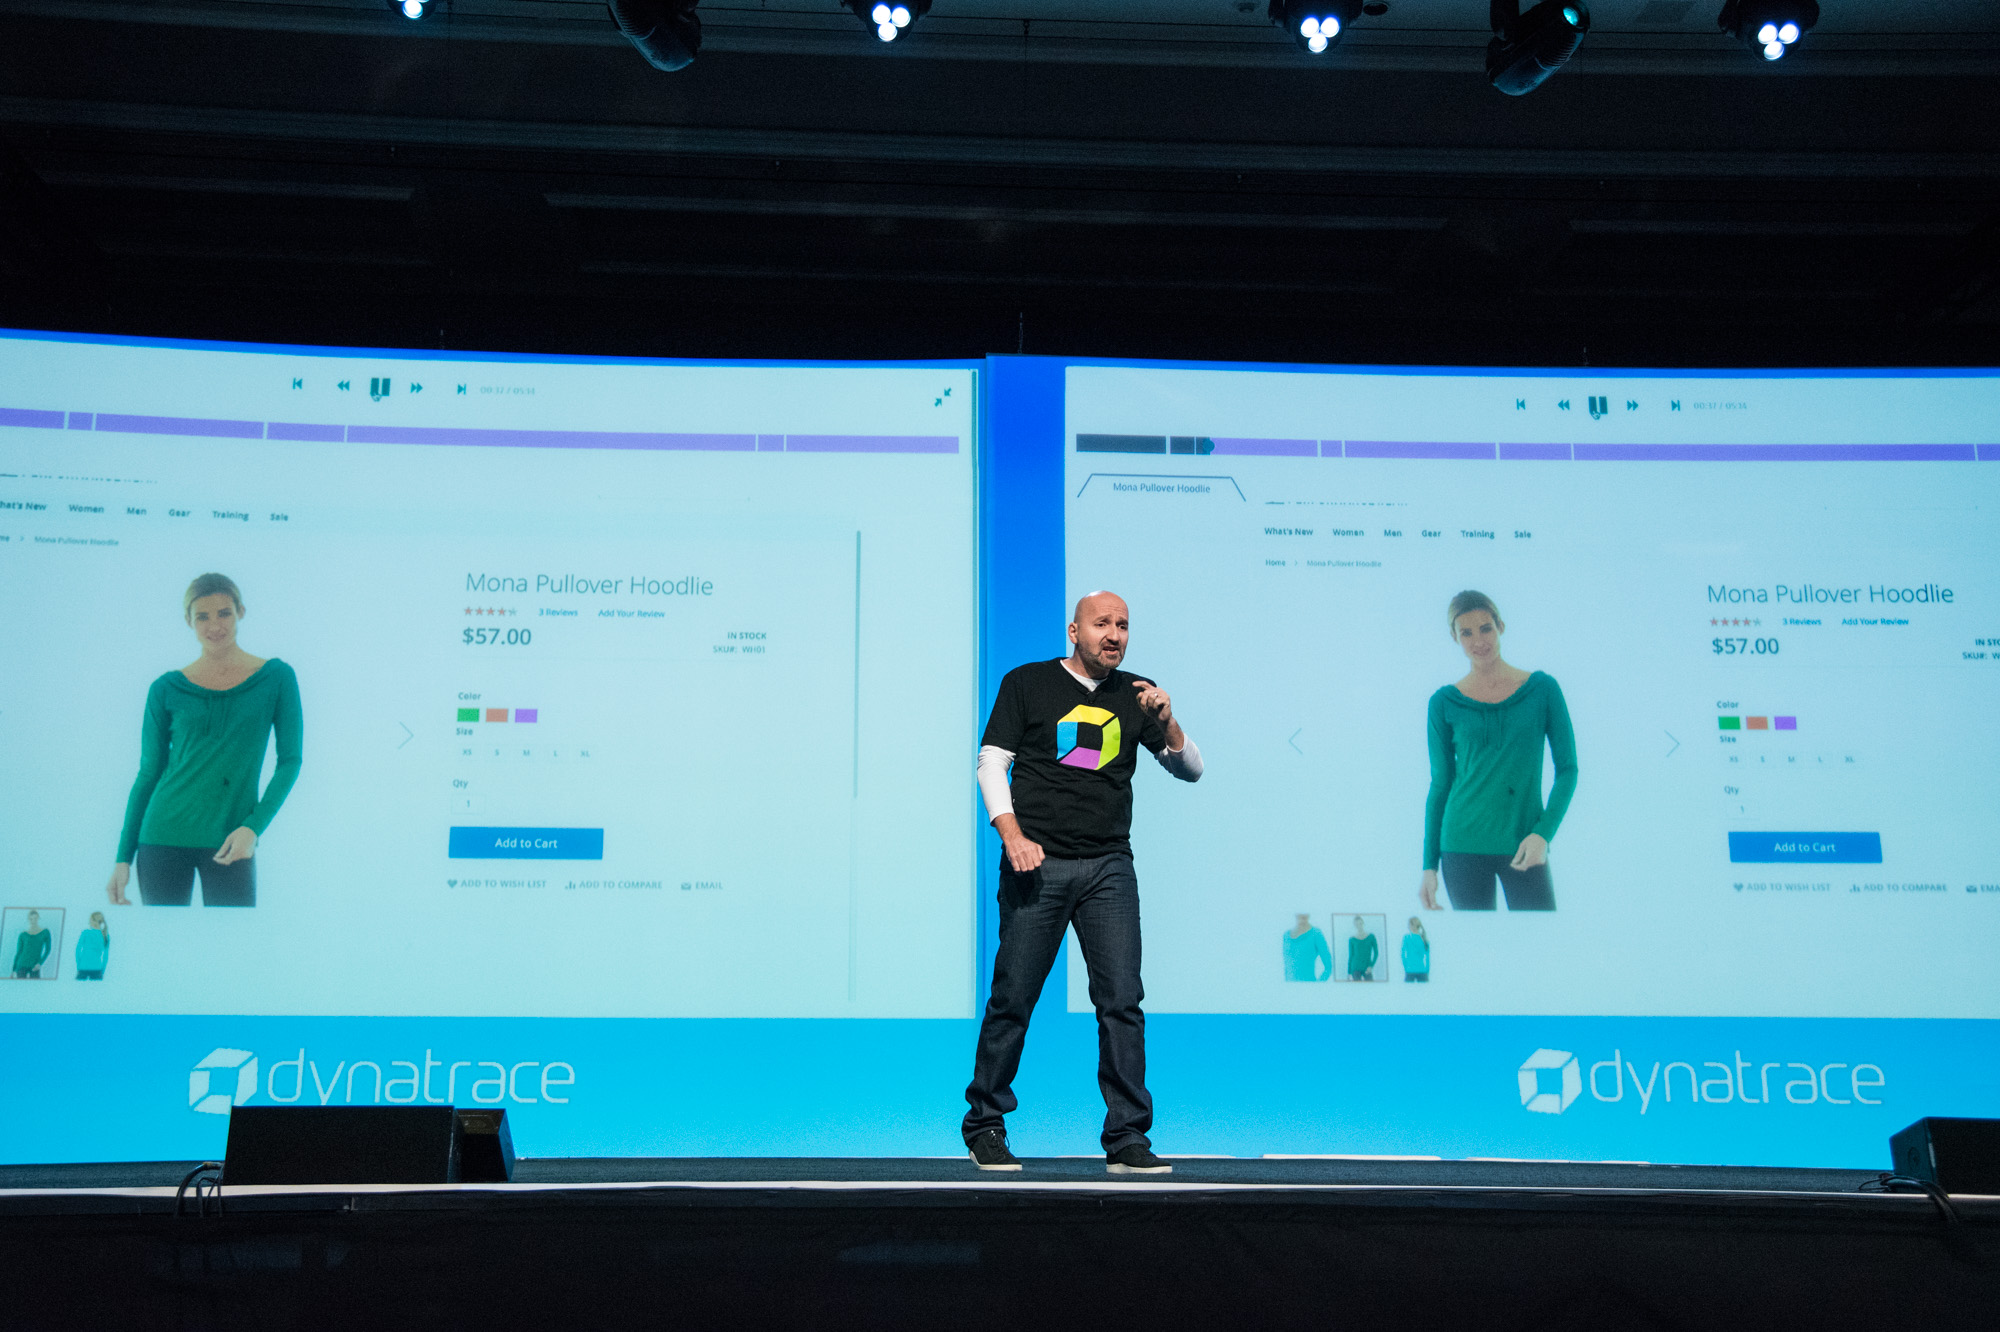 Showing off session replay on the main stage at perform 2018